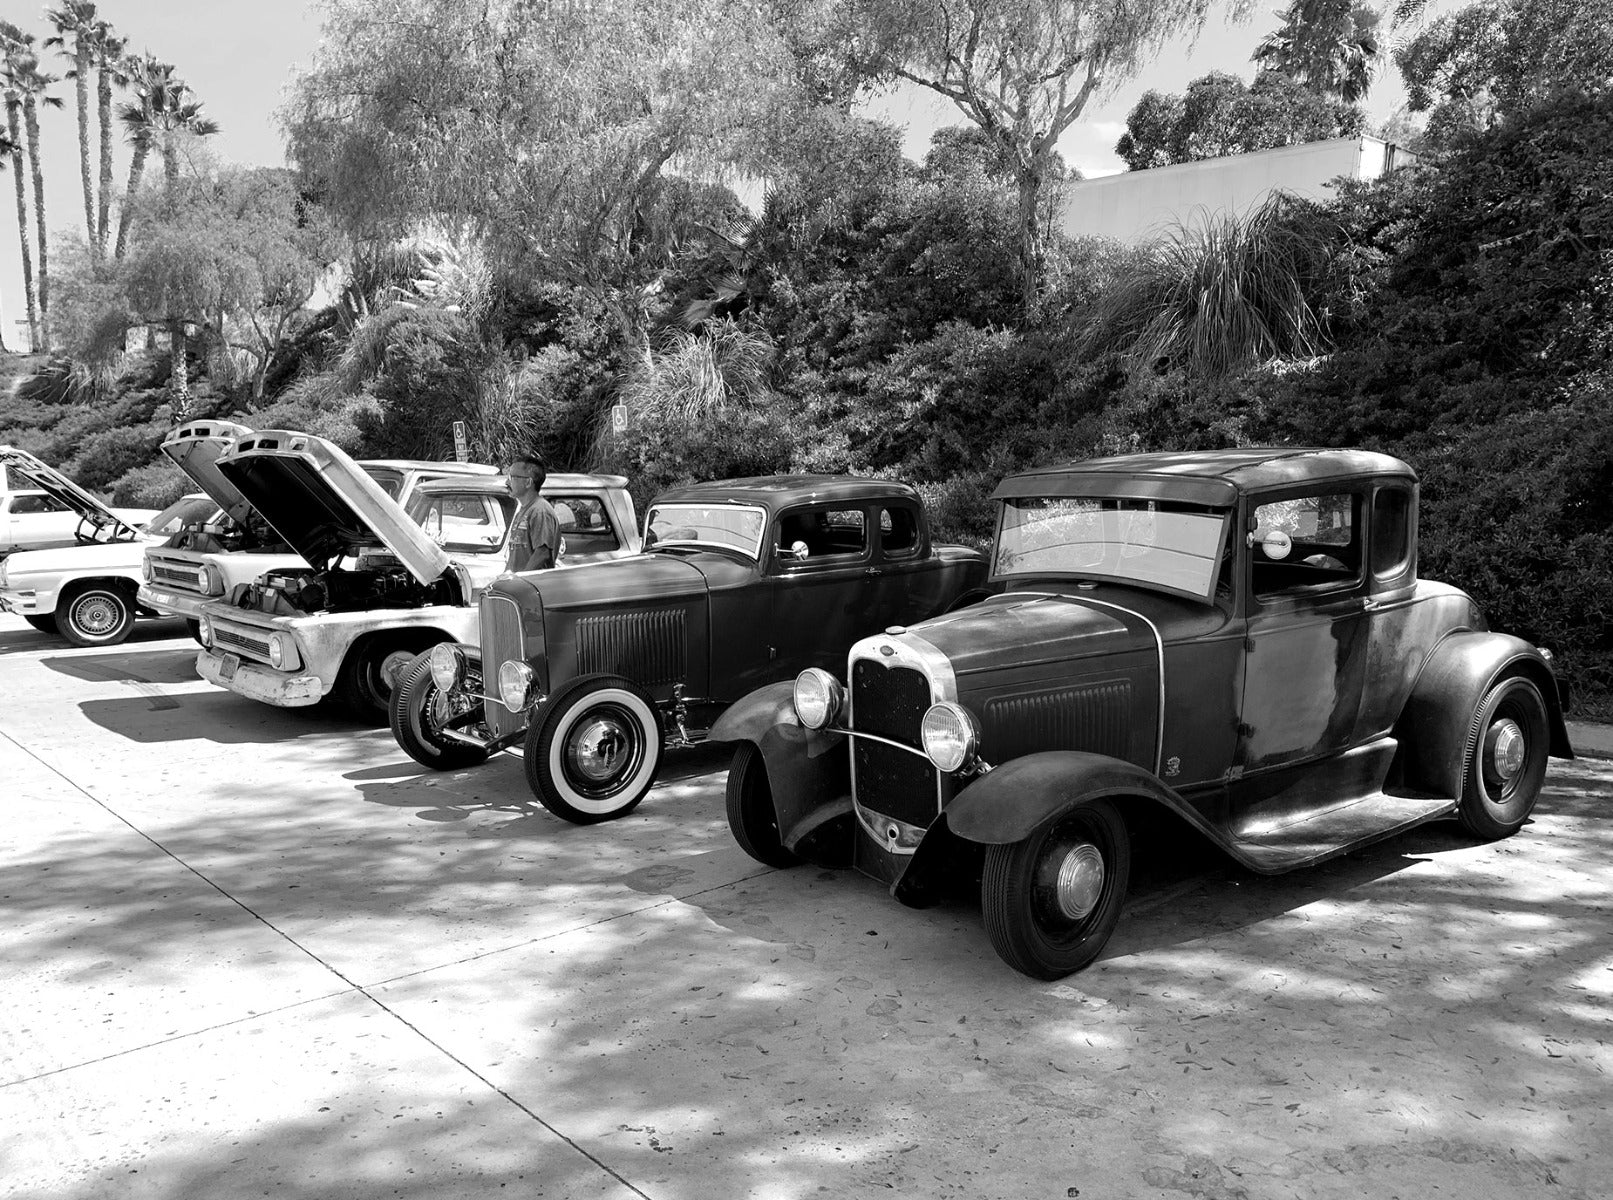 Old cars parked